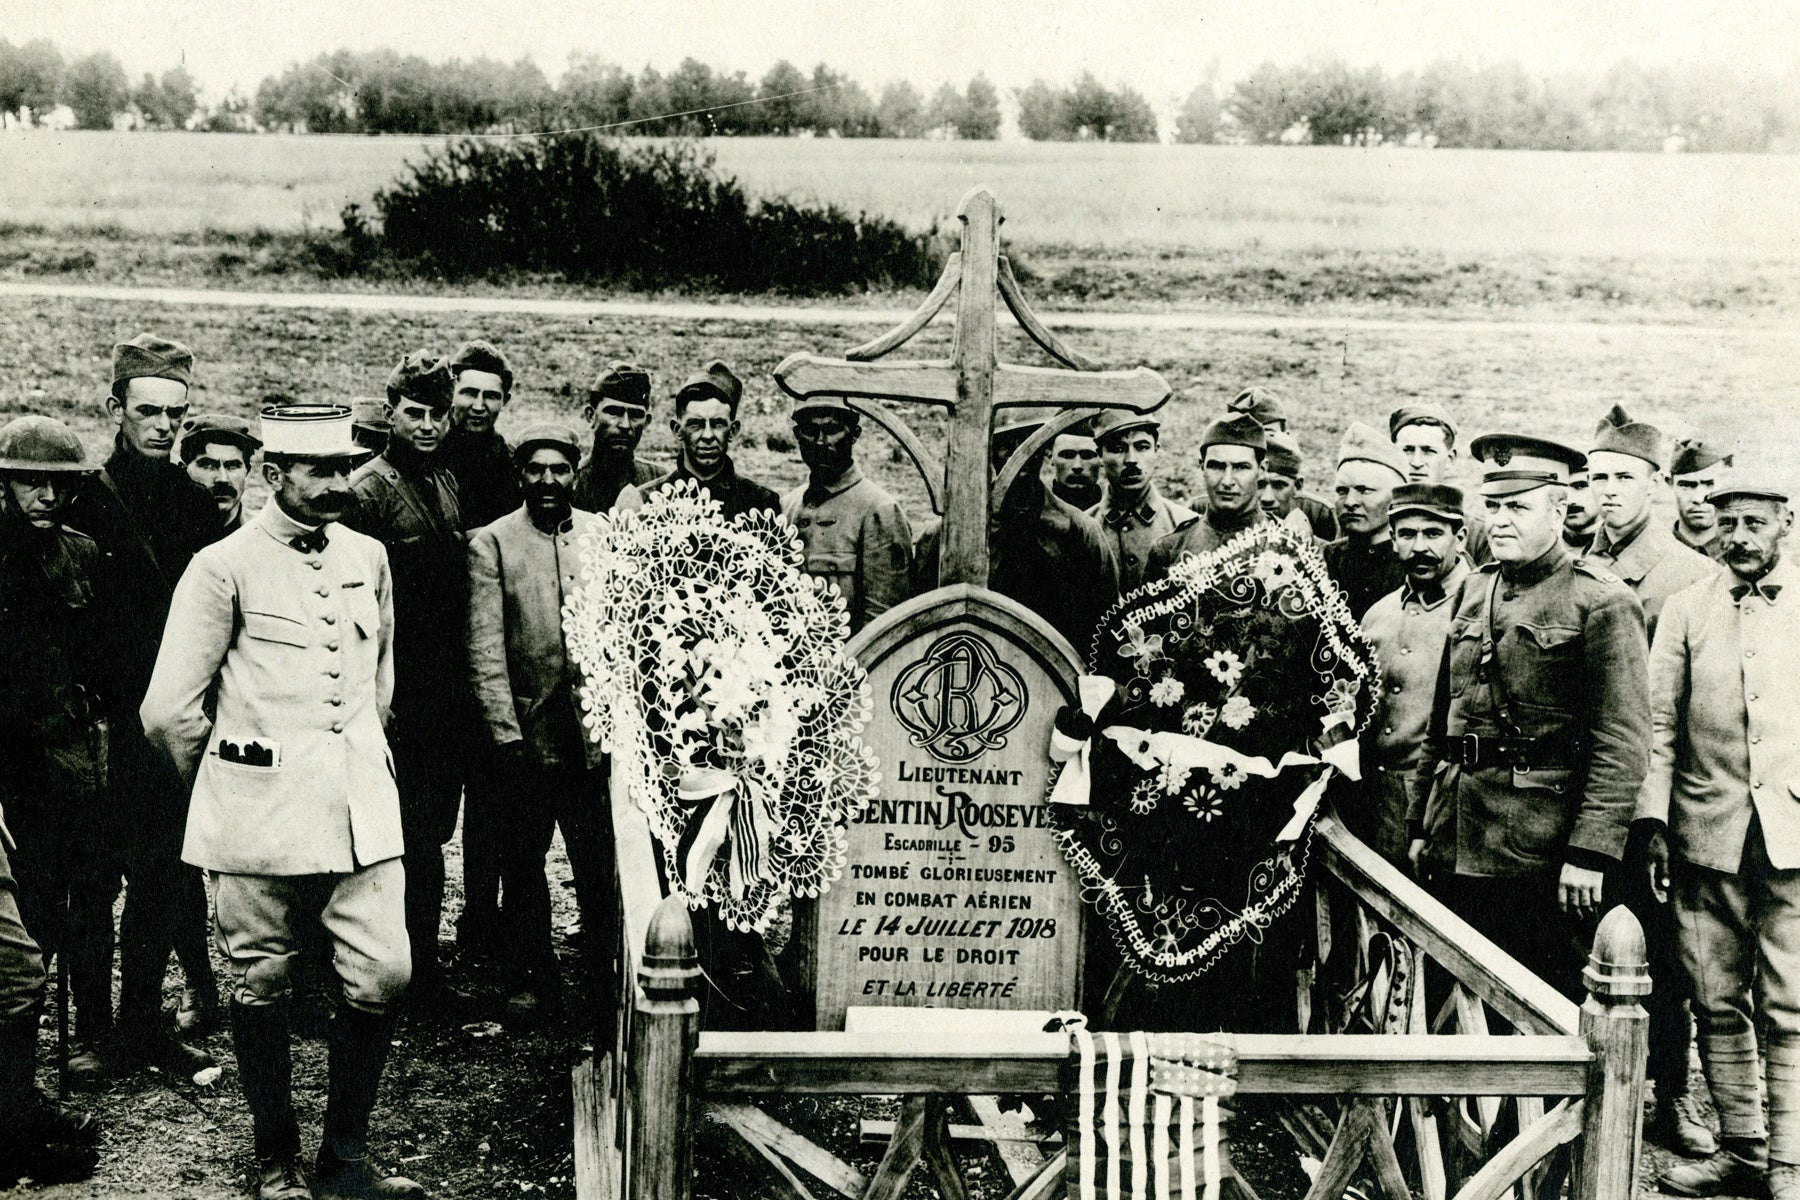 These Dutch villagers wait years to adopt US graves from World War II